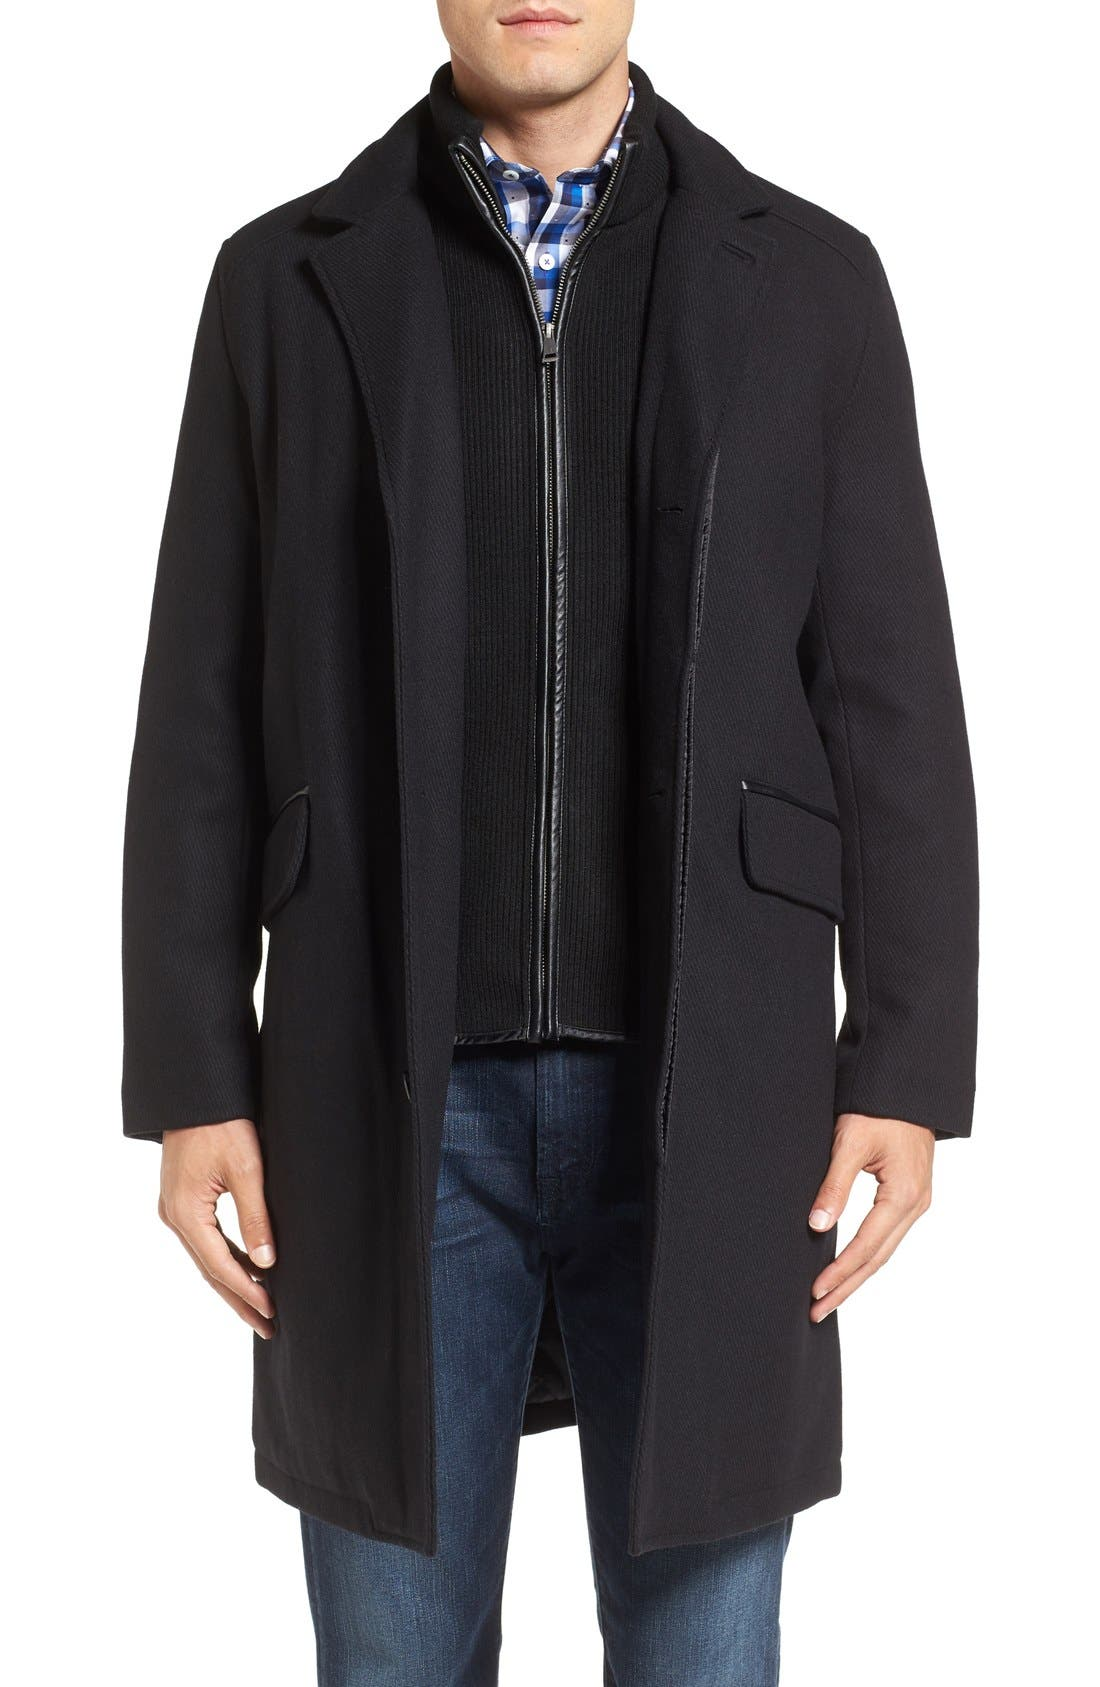 Alternate Image 1 Selected - Cole Haan Wool Blend Overcoat with Knit Bib Inset